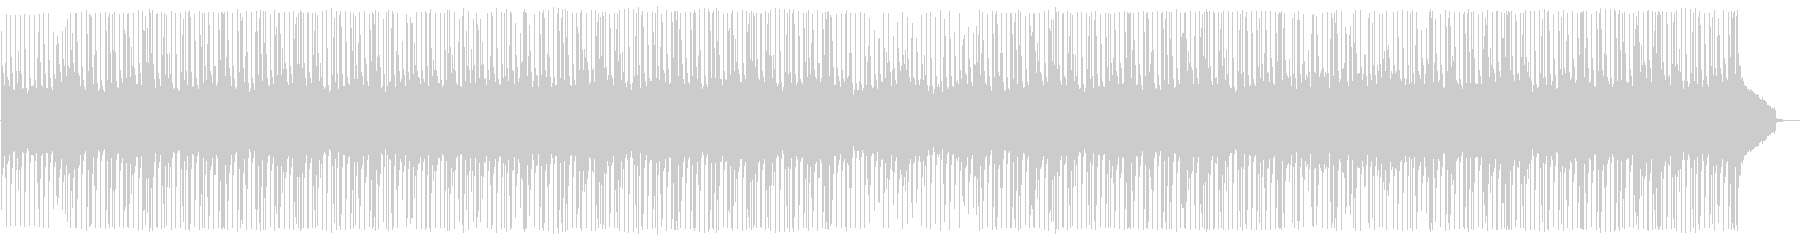 A heartwarming BGM with the image of agriculture and fields's unreproduced waveform